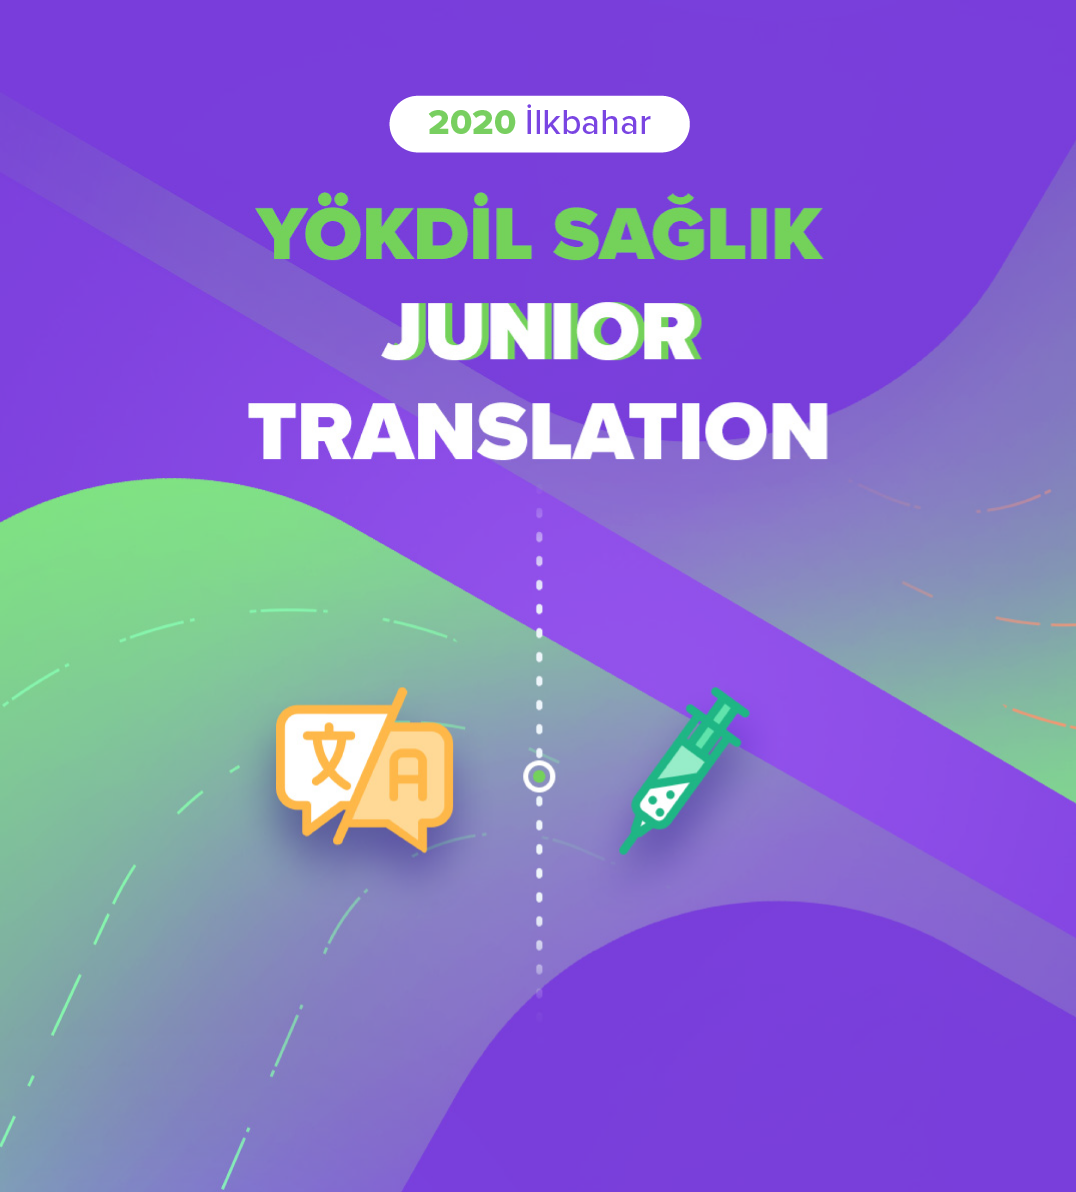 YÖKDİL Sağlık Junior Translation